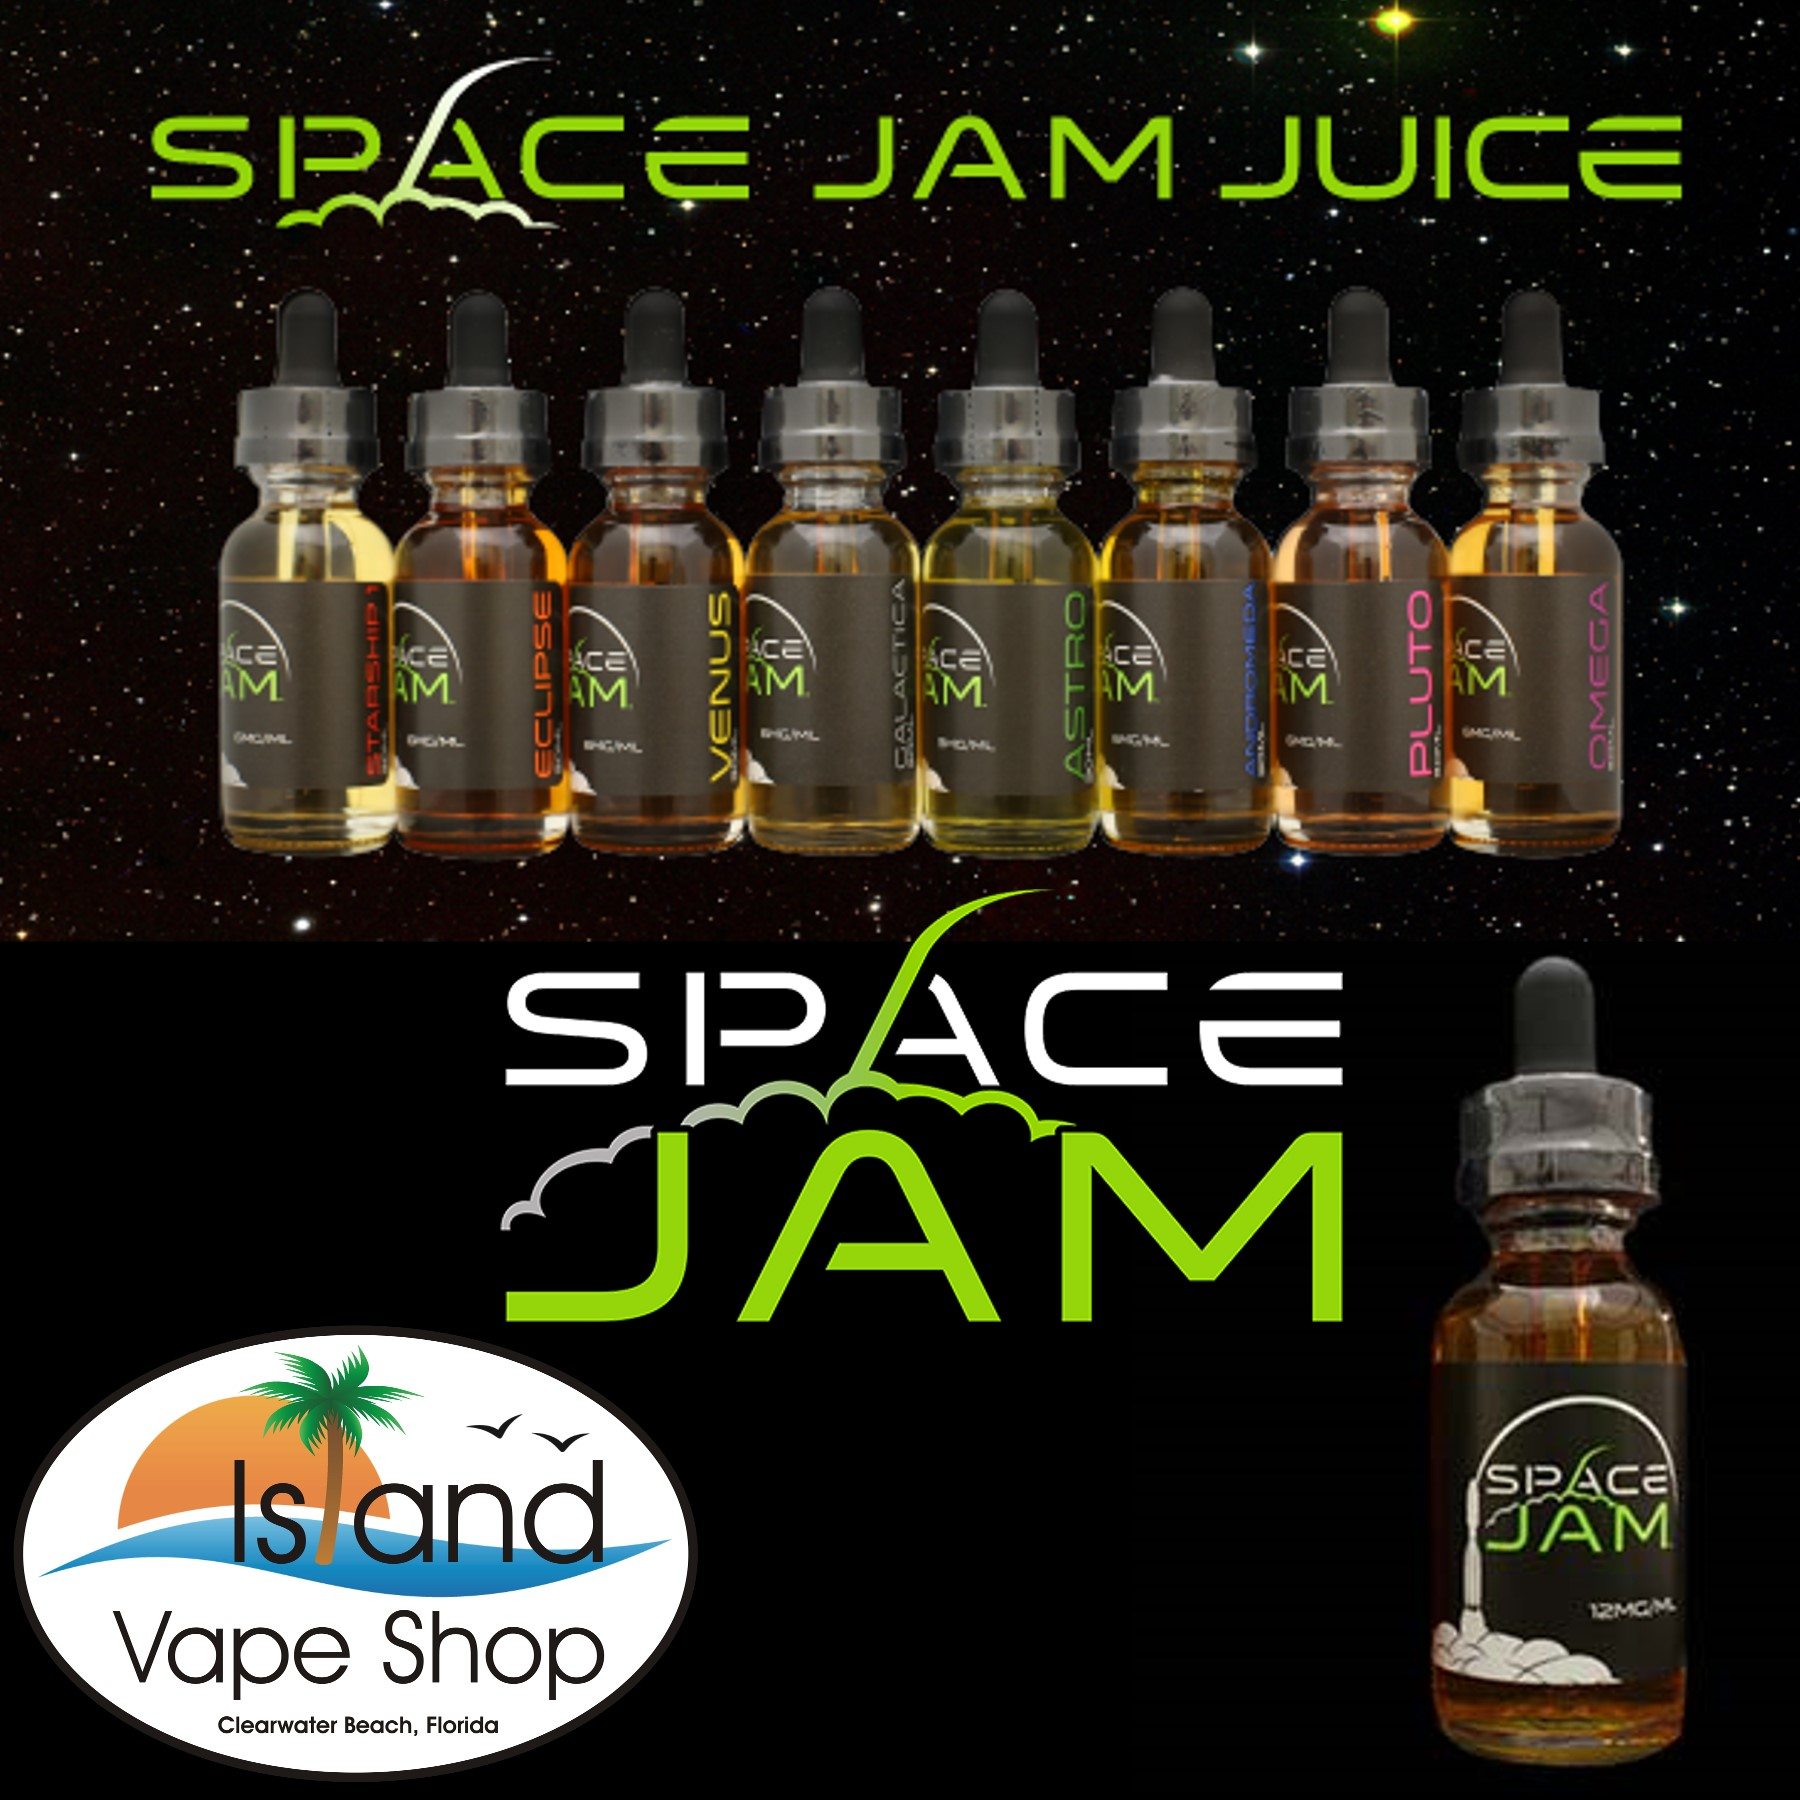 island_vape_shop_clearwater_beach_ecig_eliquid_space_jam_juice.jpg